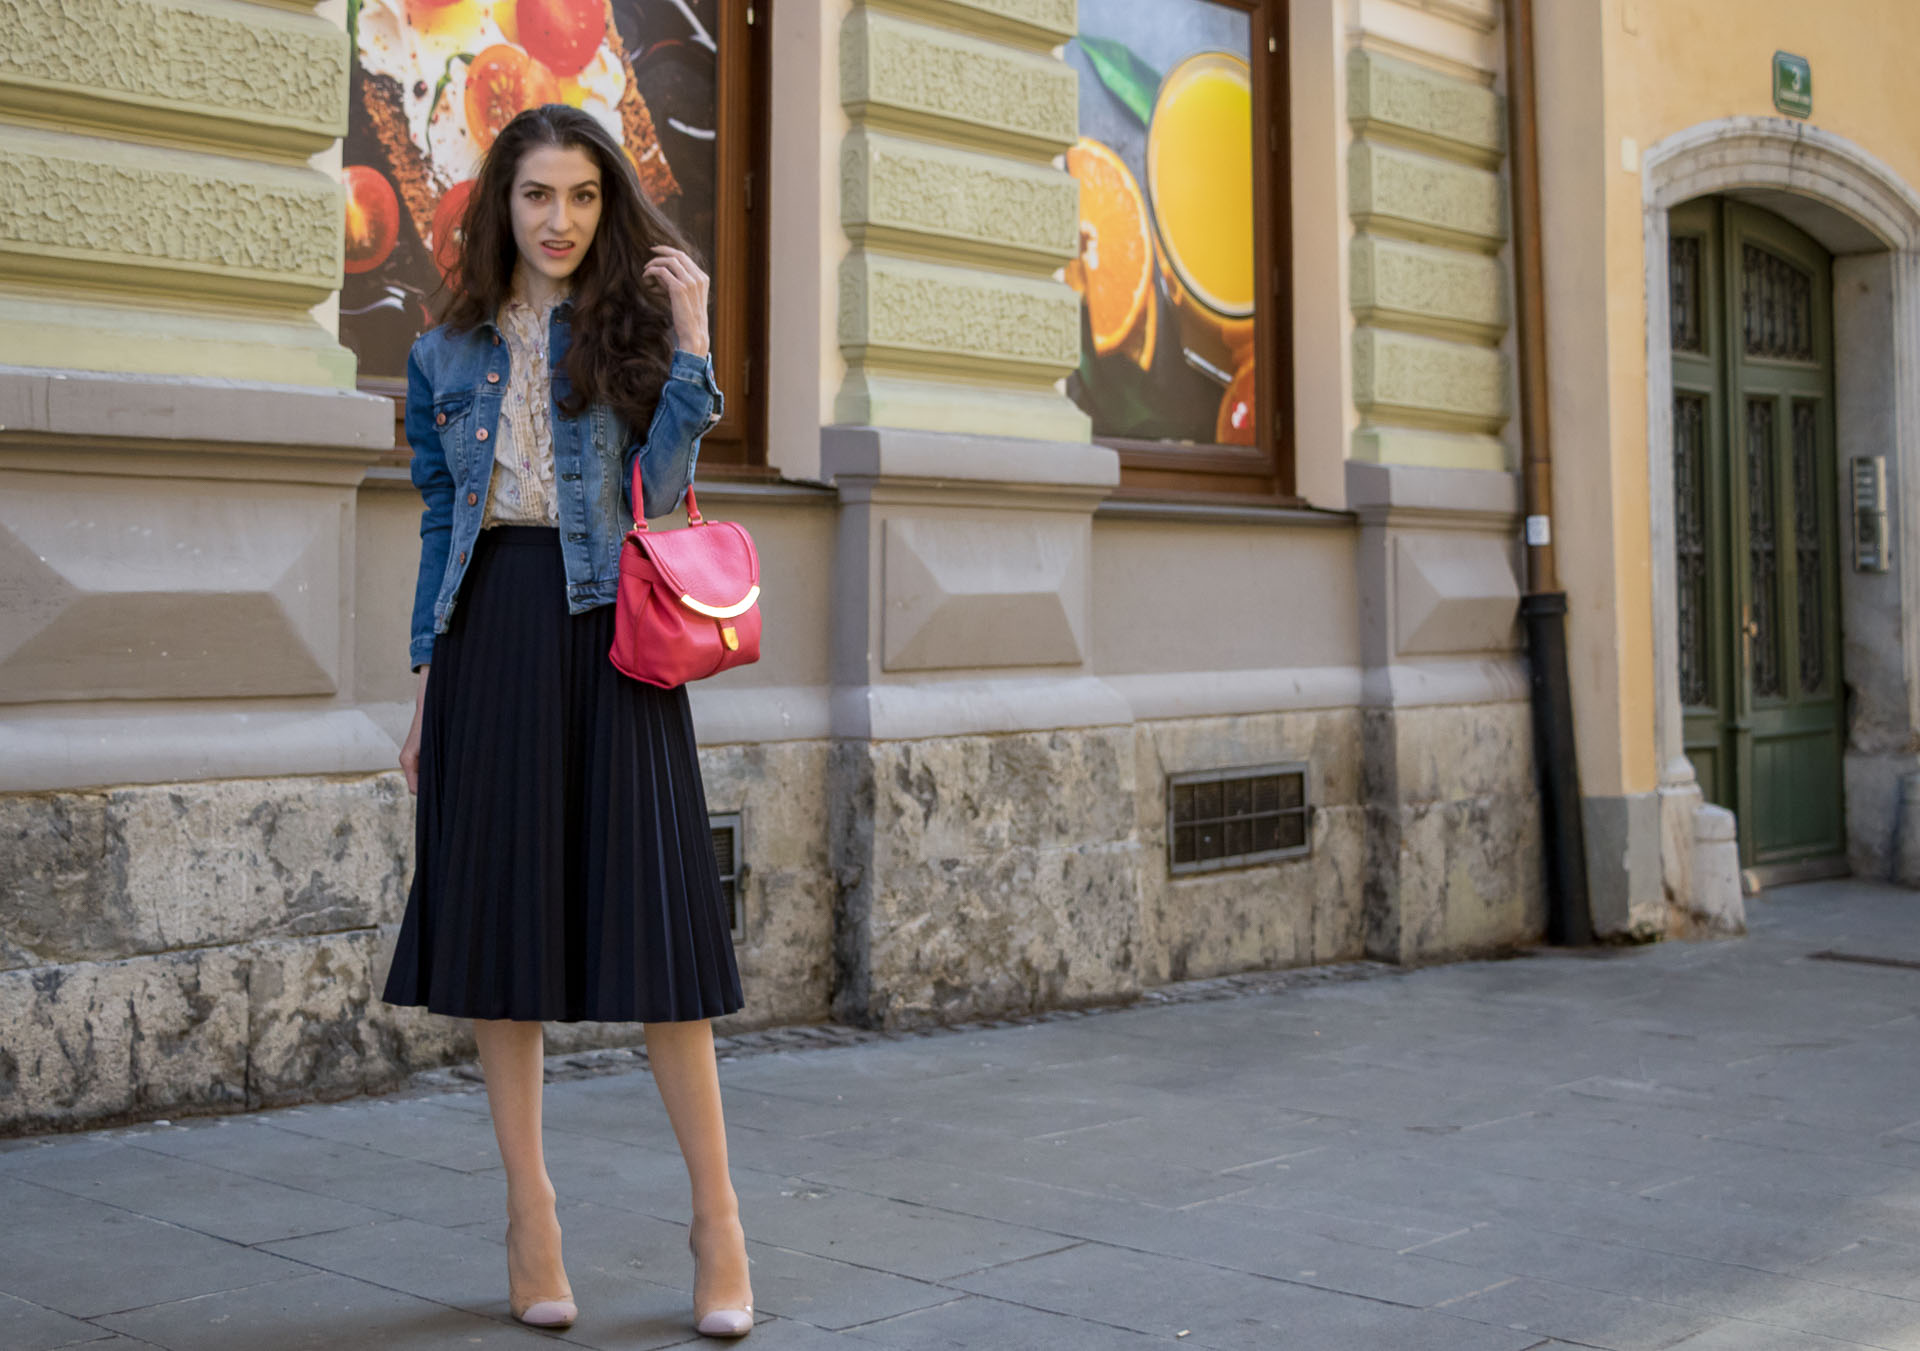 Veronika Lipar Fashion Blogger of Brunette from Wall Street wearing H&M denim jacket, floral blouse, midi pleated skirt, Gianvito Rossi plexi pumps, pink top handle bag looking chic and casual